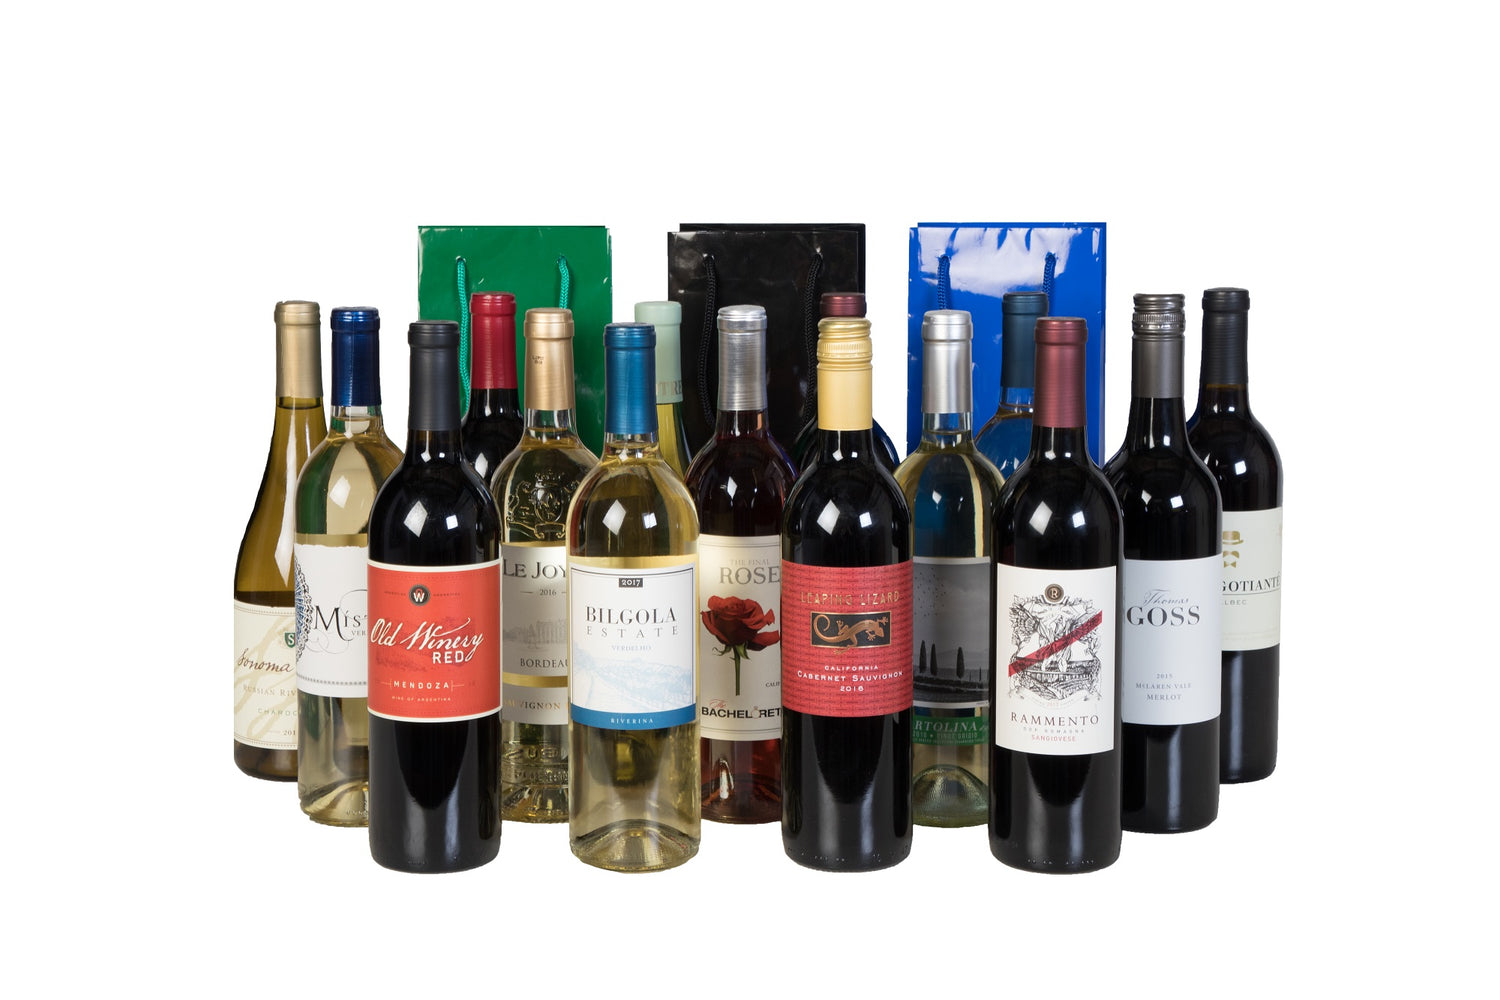 Groupon - Holiday 15 Pack Wine + 3 Holiday Gift Bags - Wine on Sale